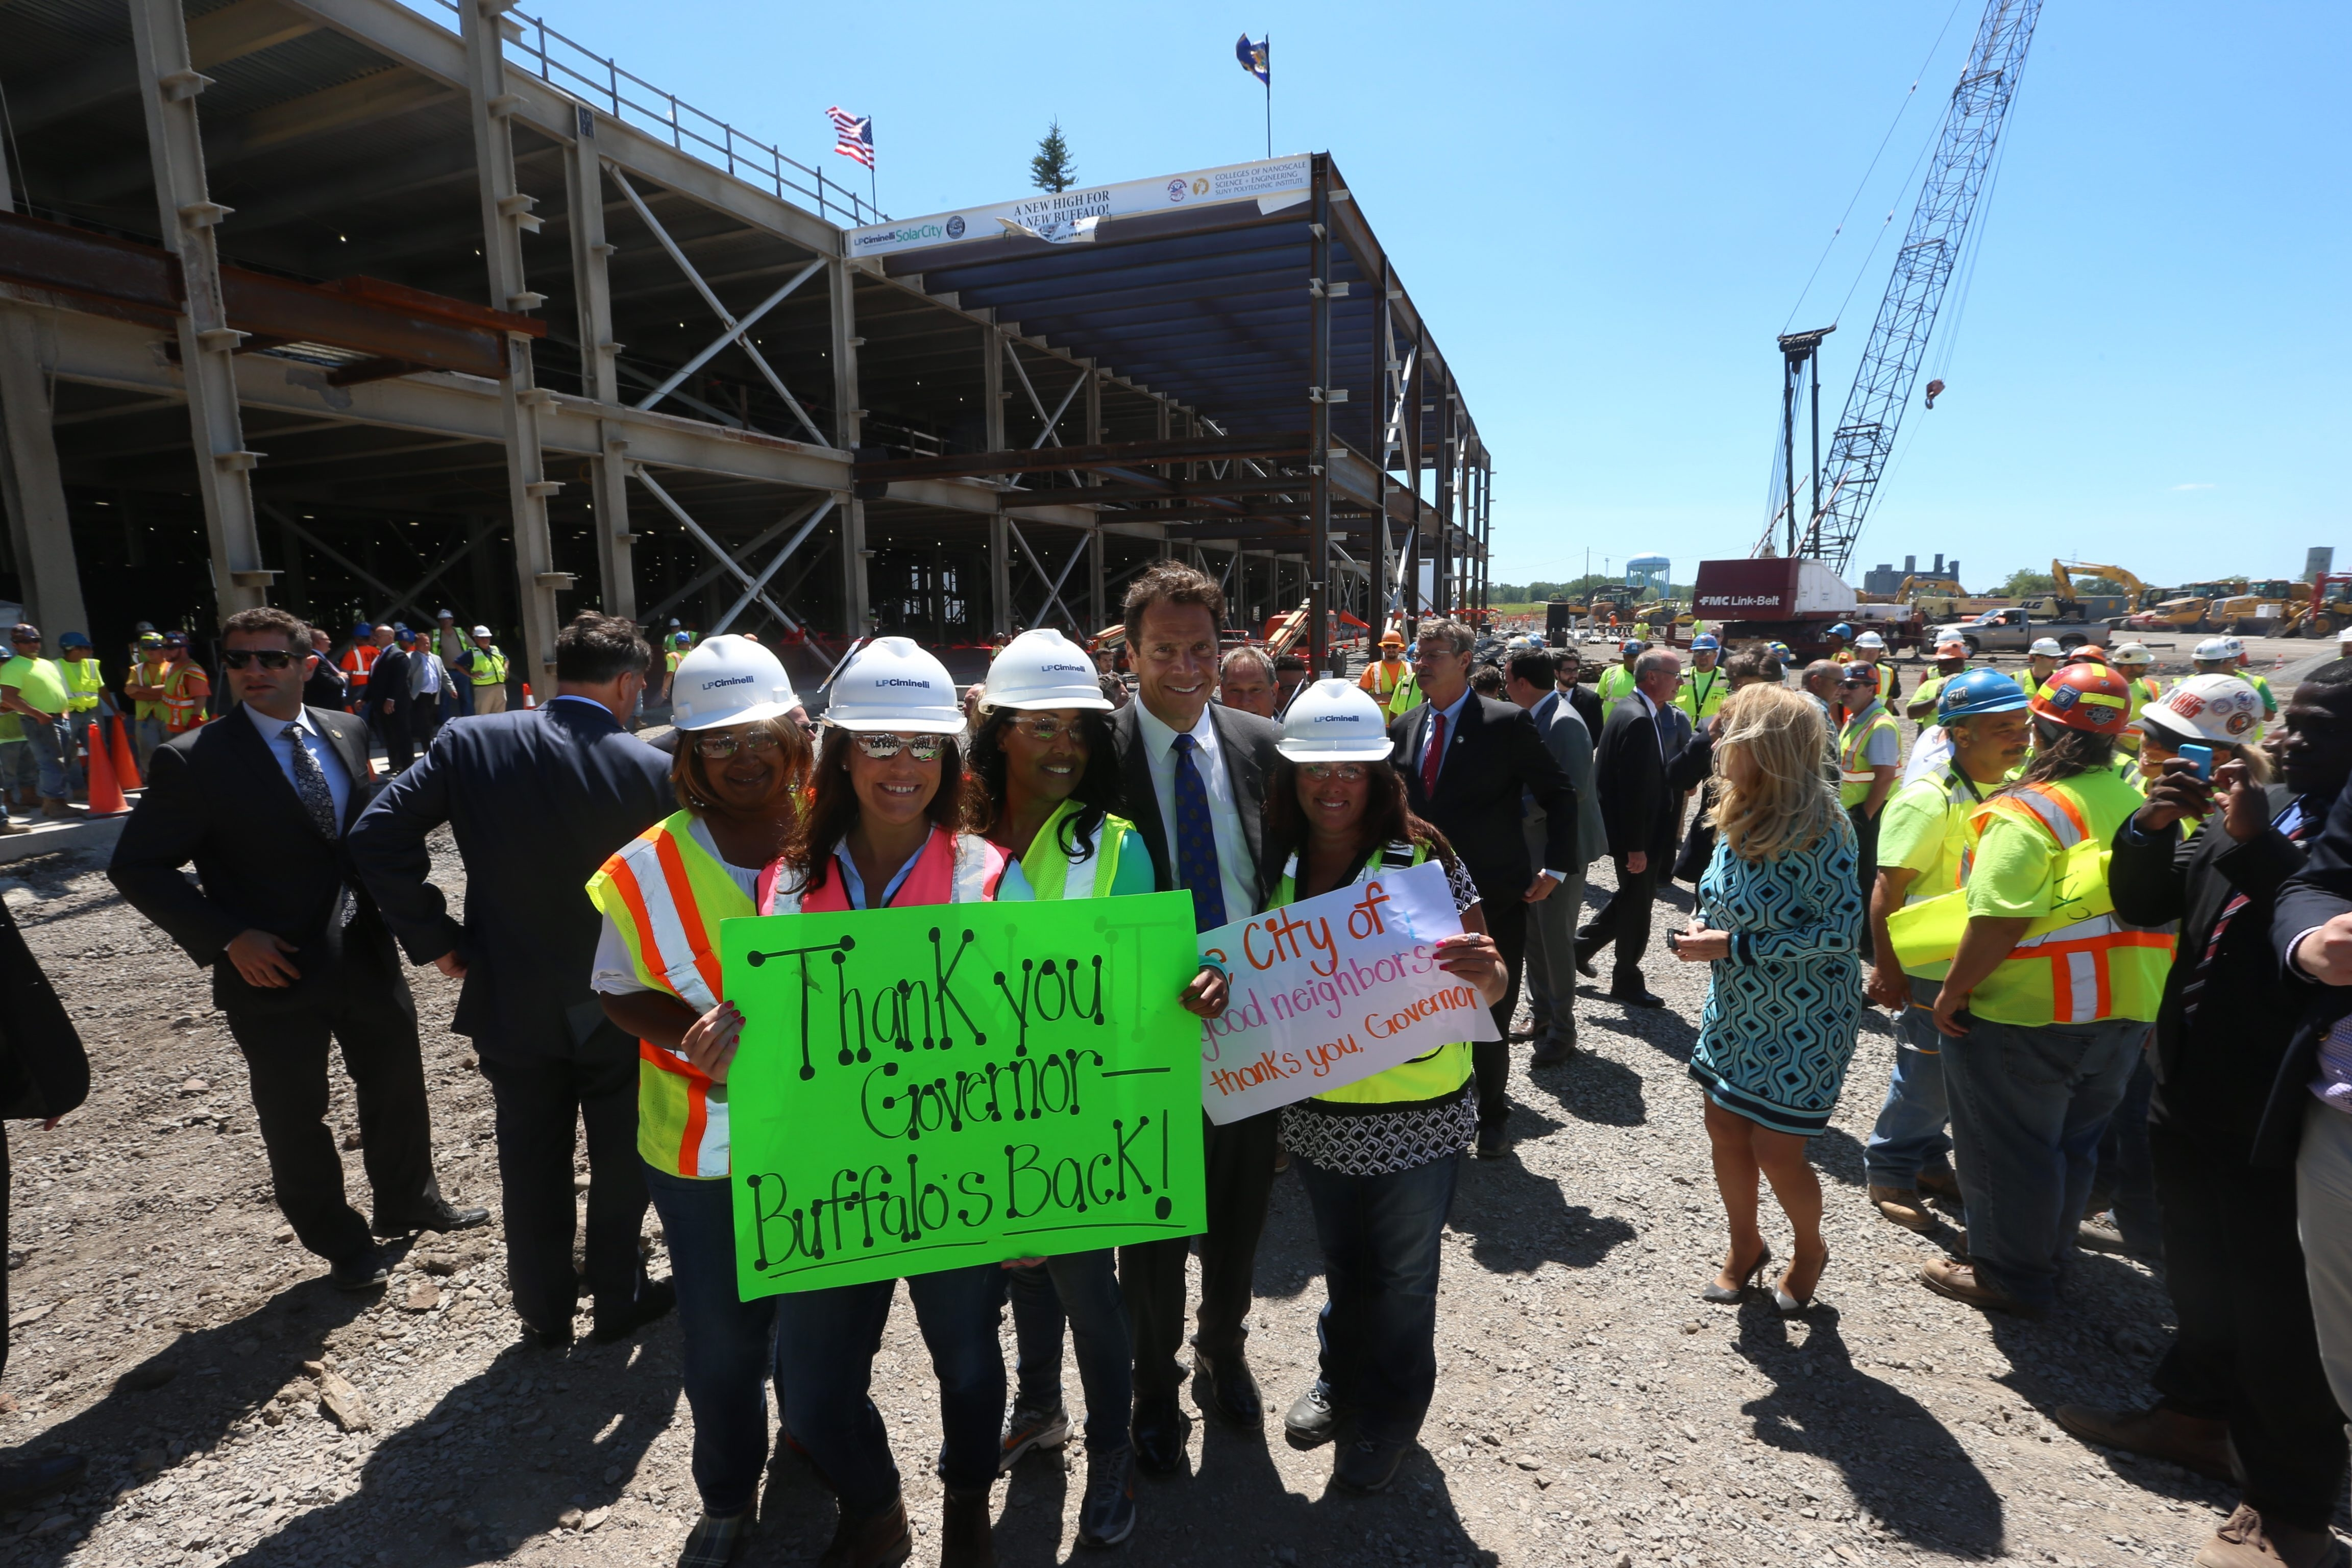 Buffalo Niagara unemployment rate drops to 8-year low of 5.2% in August